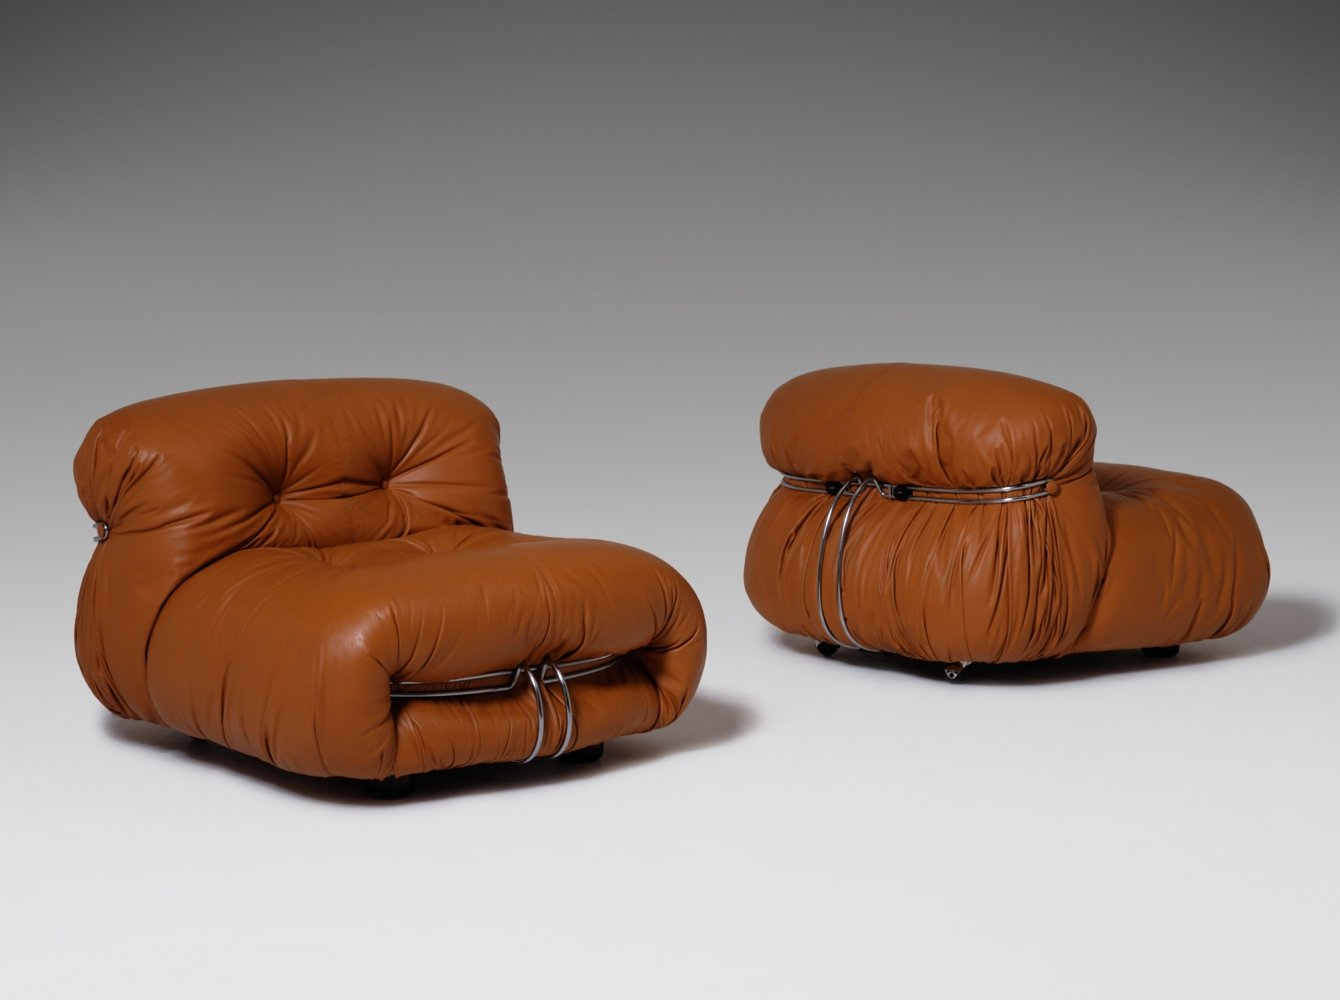 Soriana Lounge chairs in Cognac leather by Afra & Tobia Scarpa, Italy 1969